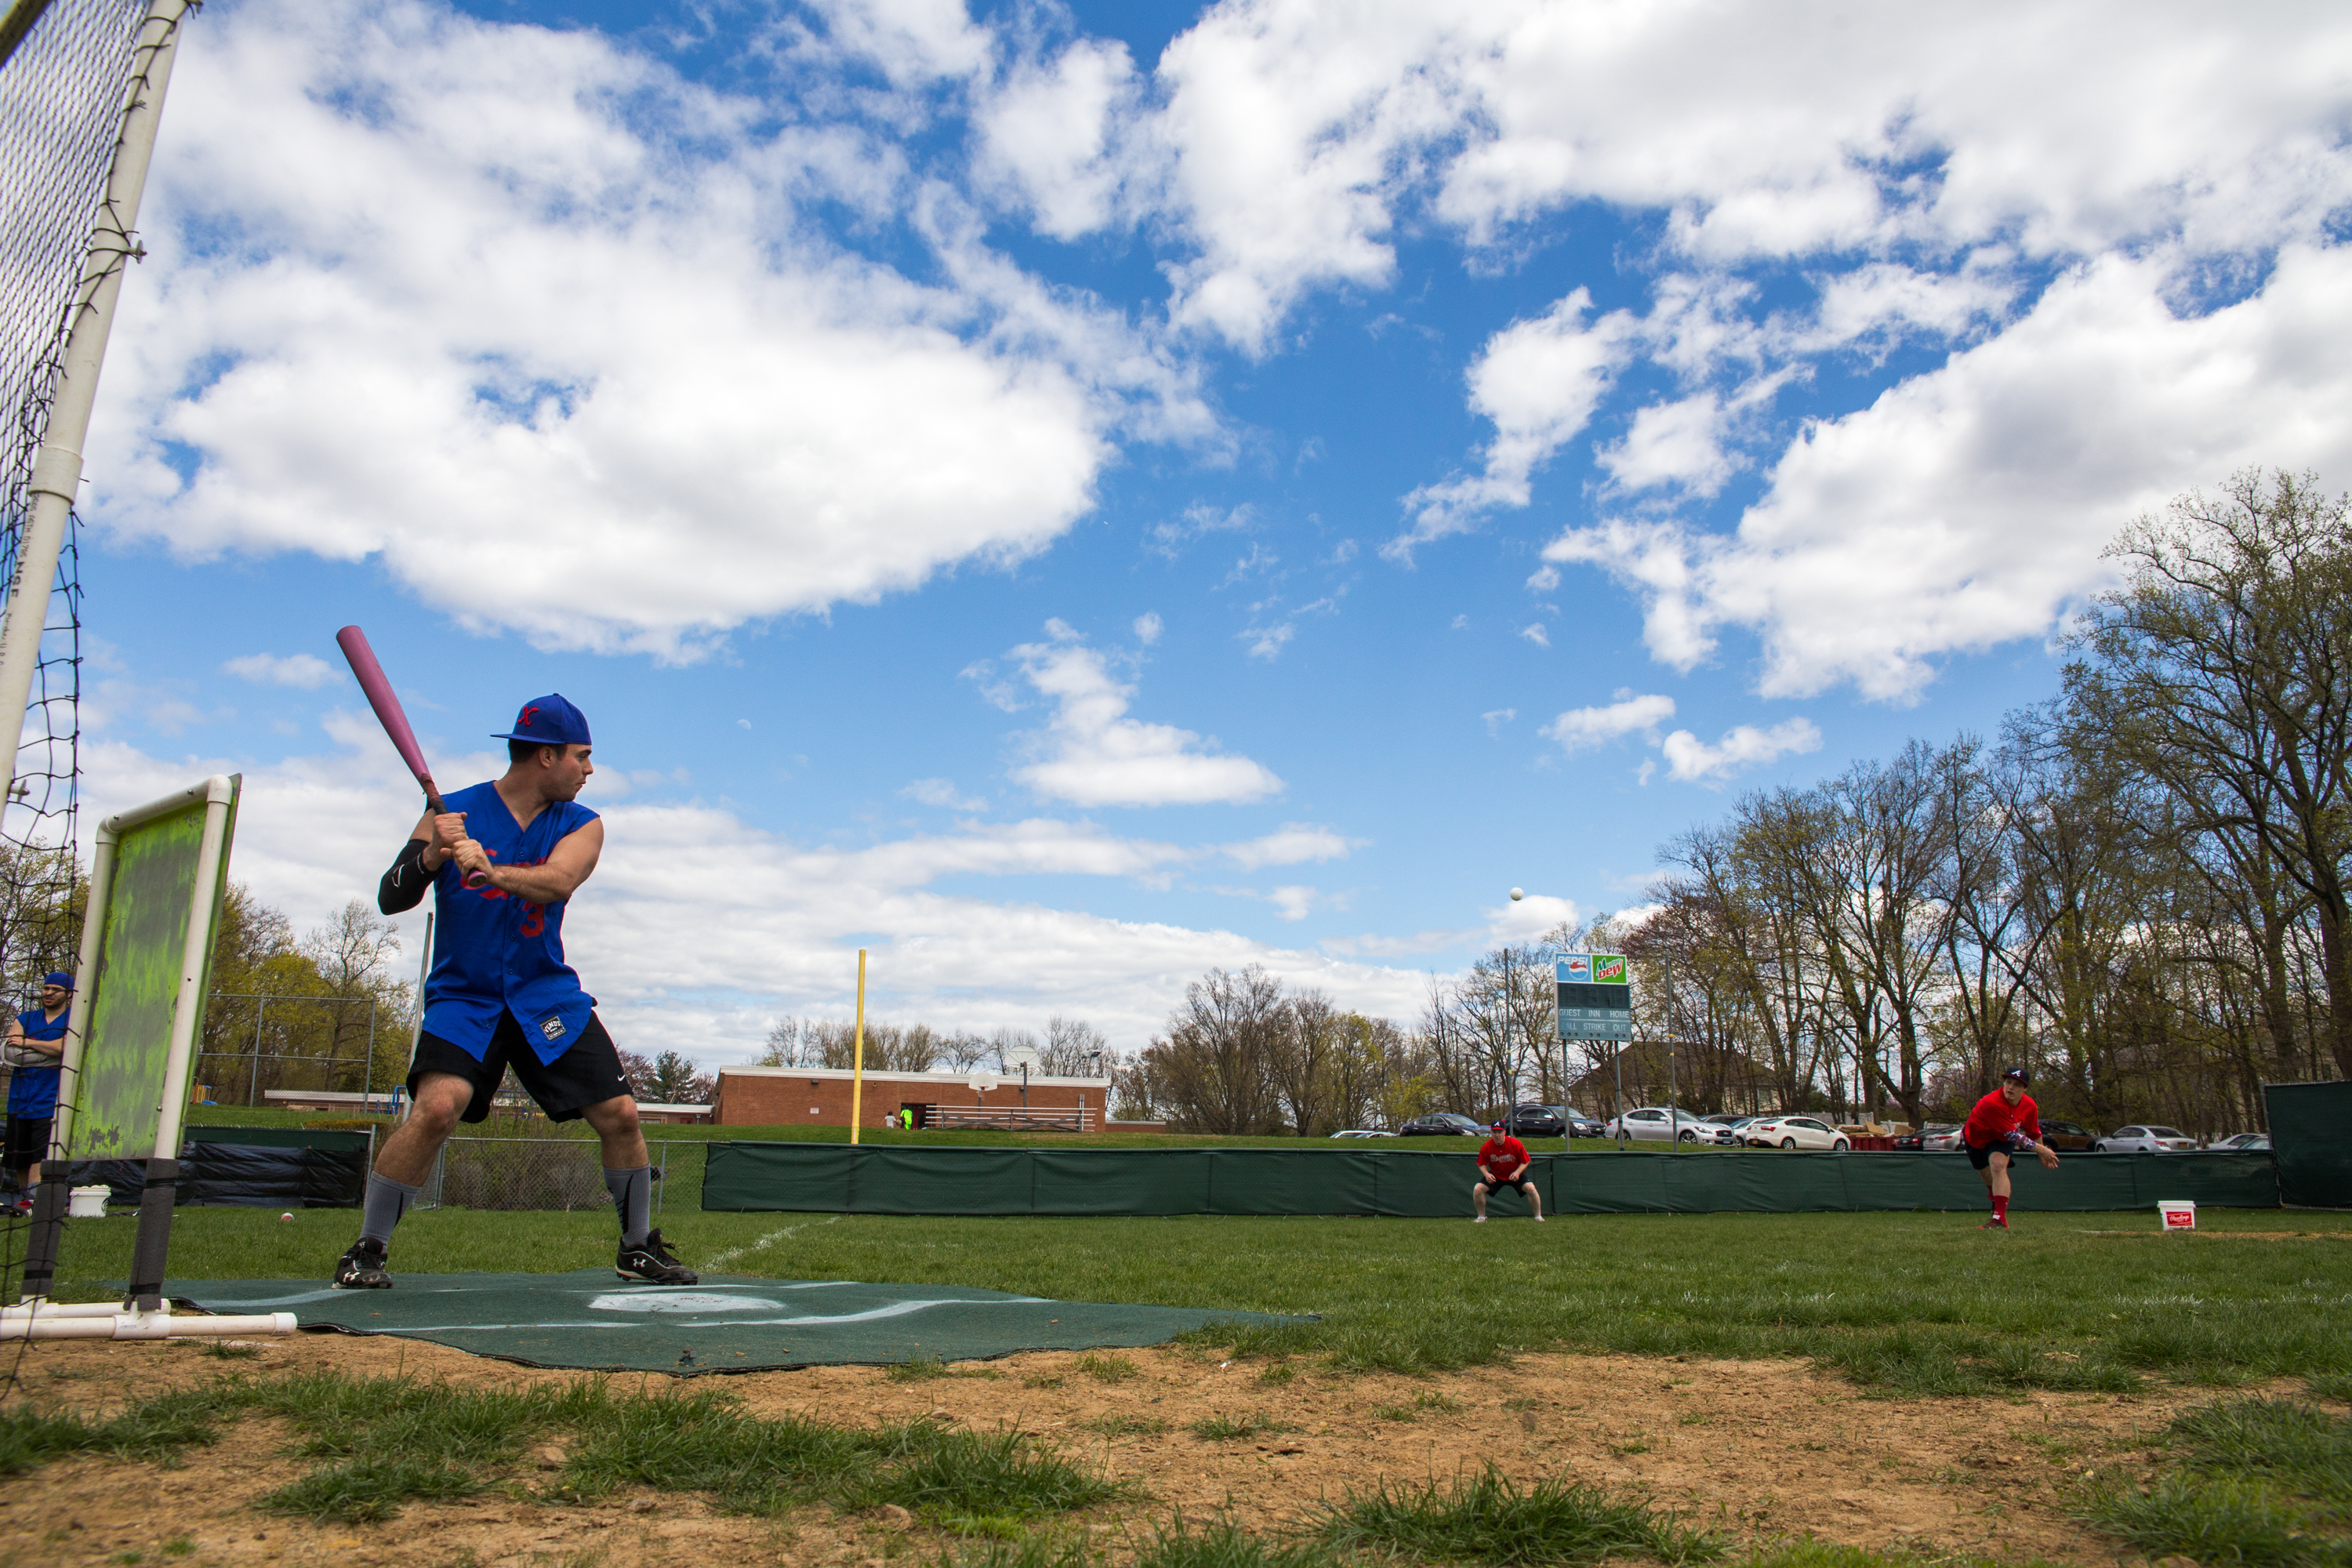 palisades-wiffle-ball-league-field.jpg